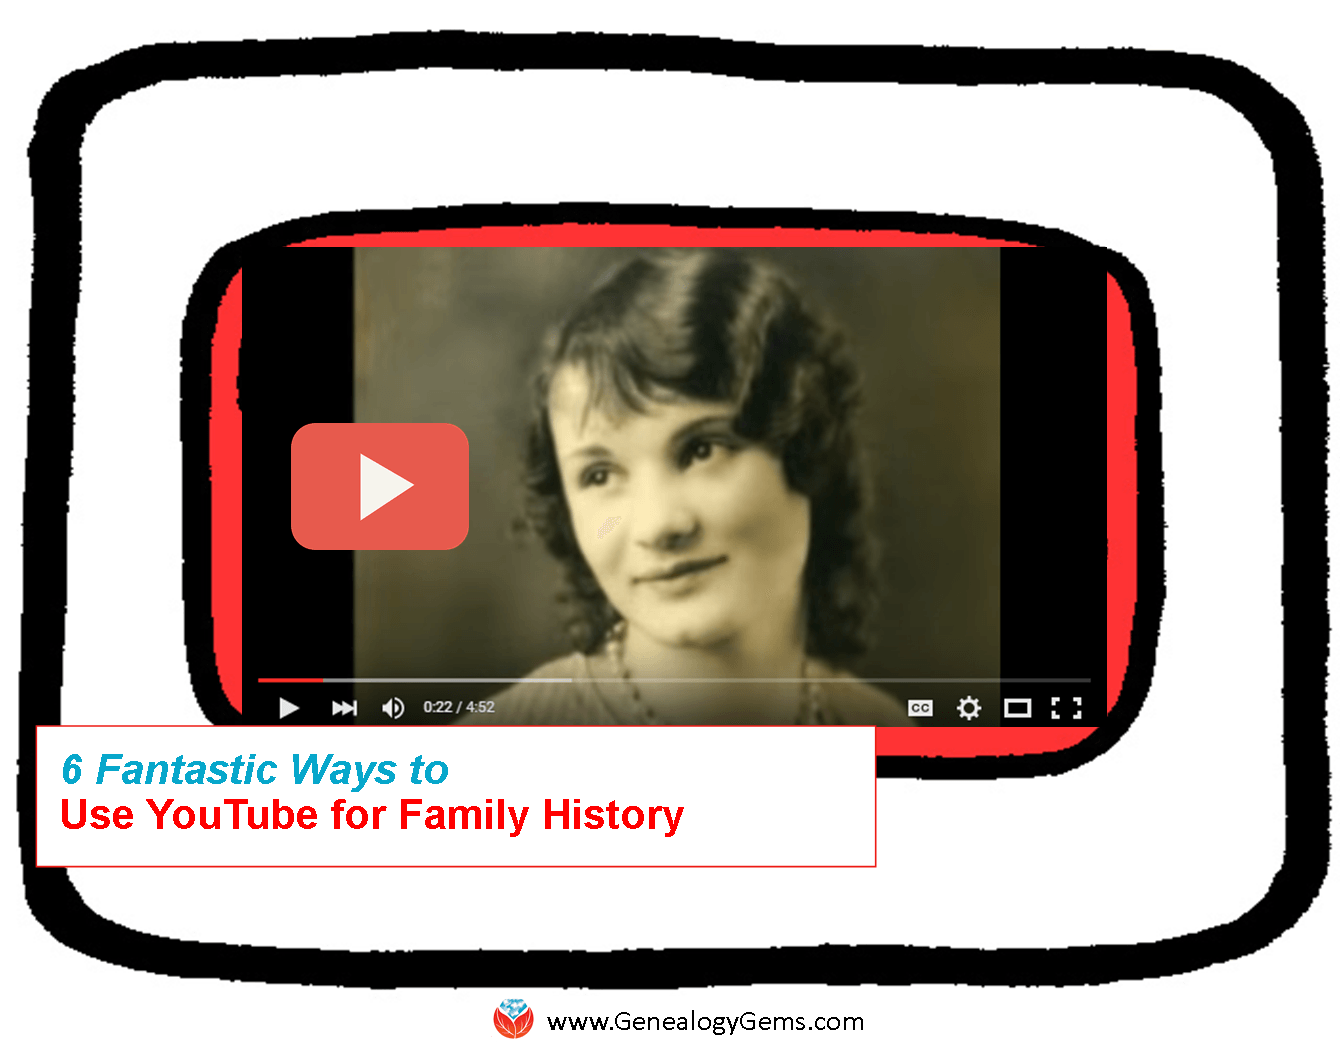 YouTube for family history